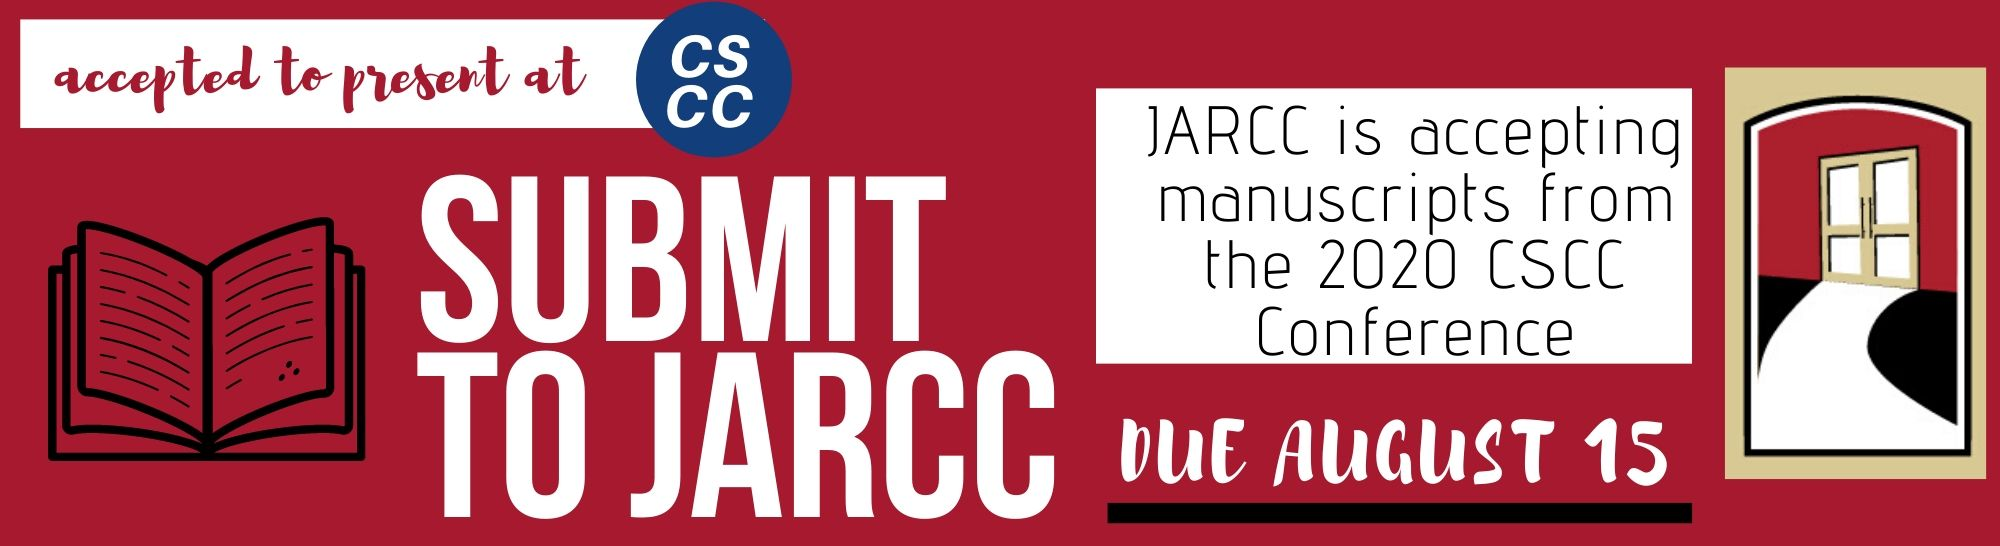 Accepted to Preset at CSCC. Submit to JARCC. JARCC is accepting manuscripts from the 2020 CSCC Conference. Due August 15.